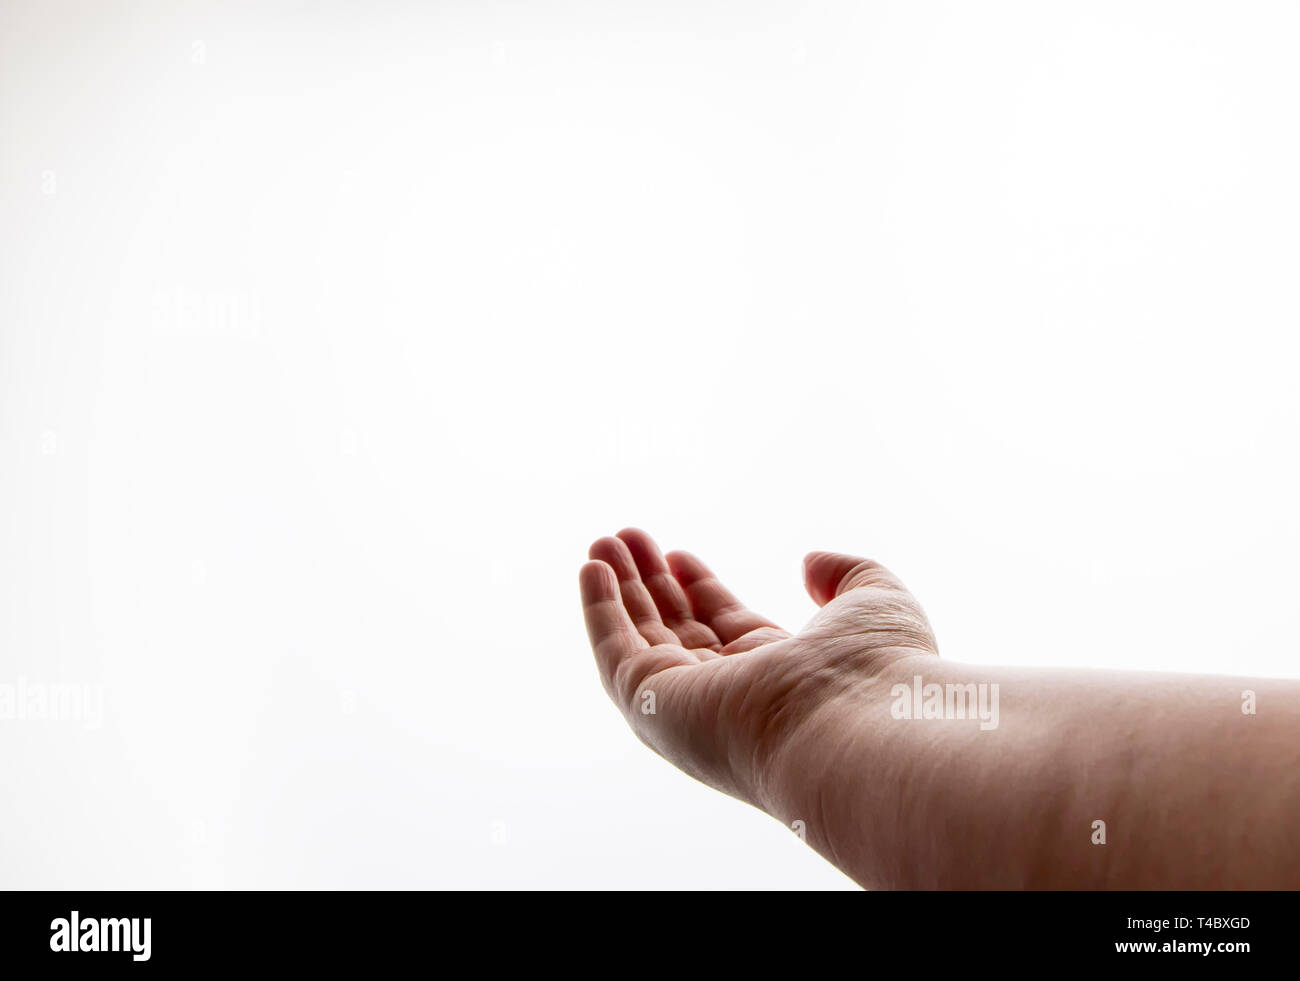 one hand reaching out with the palm facing upwards, set against a white background - Stock Image